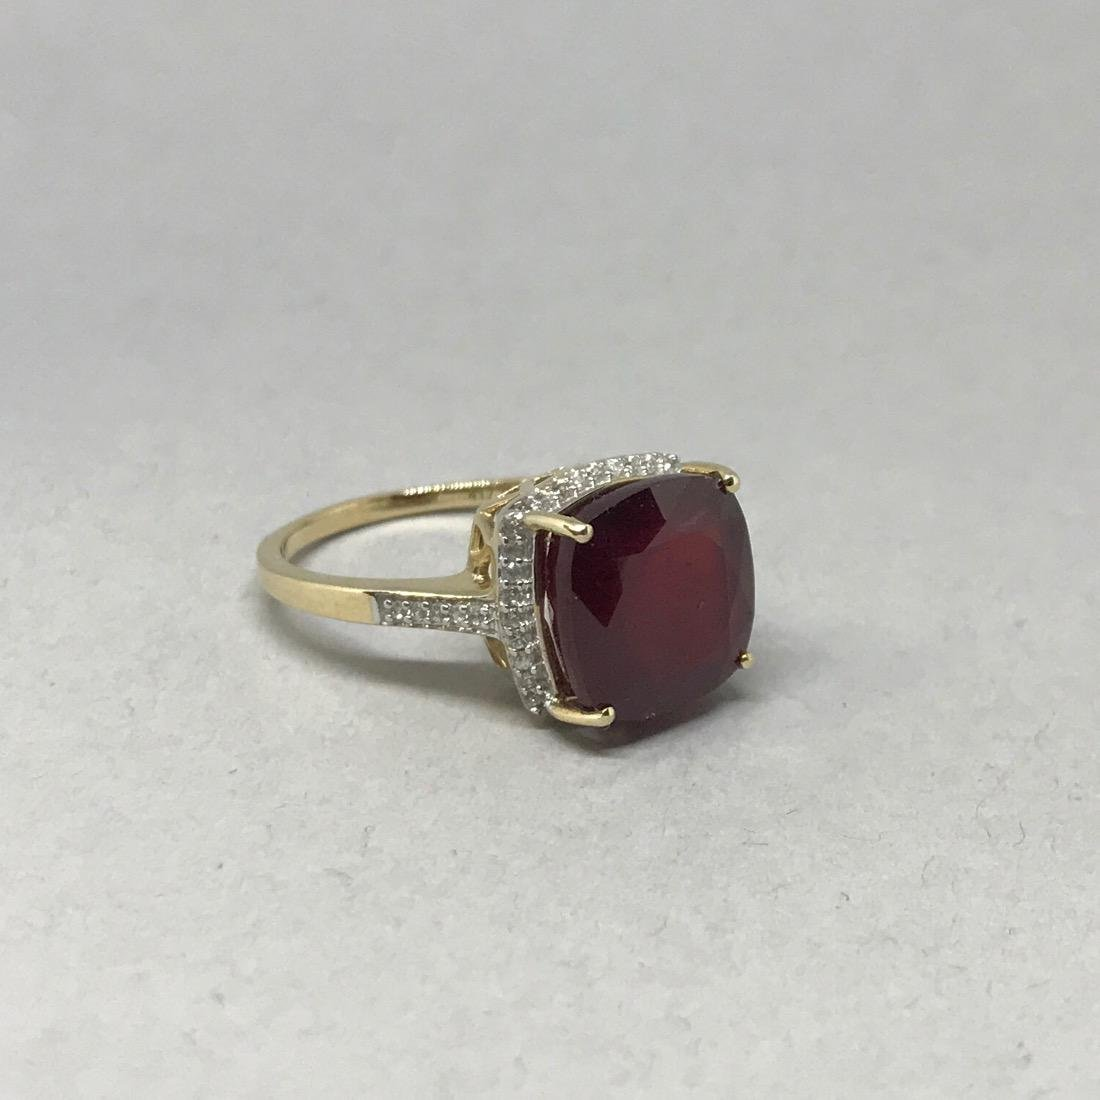 10K Gold Ring with Large